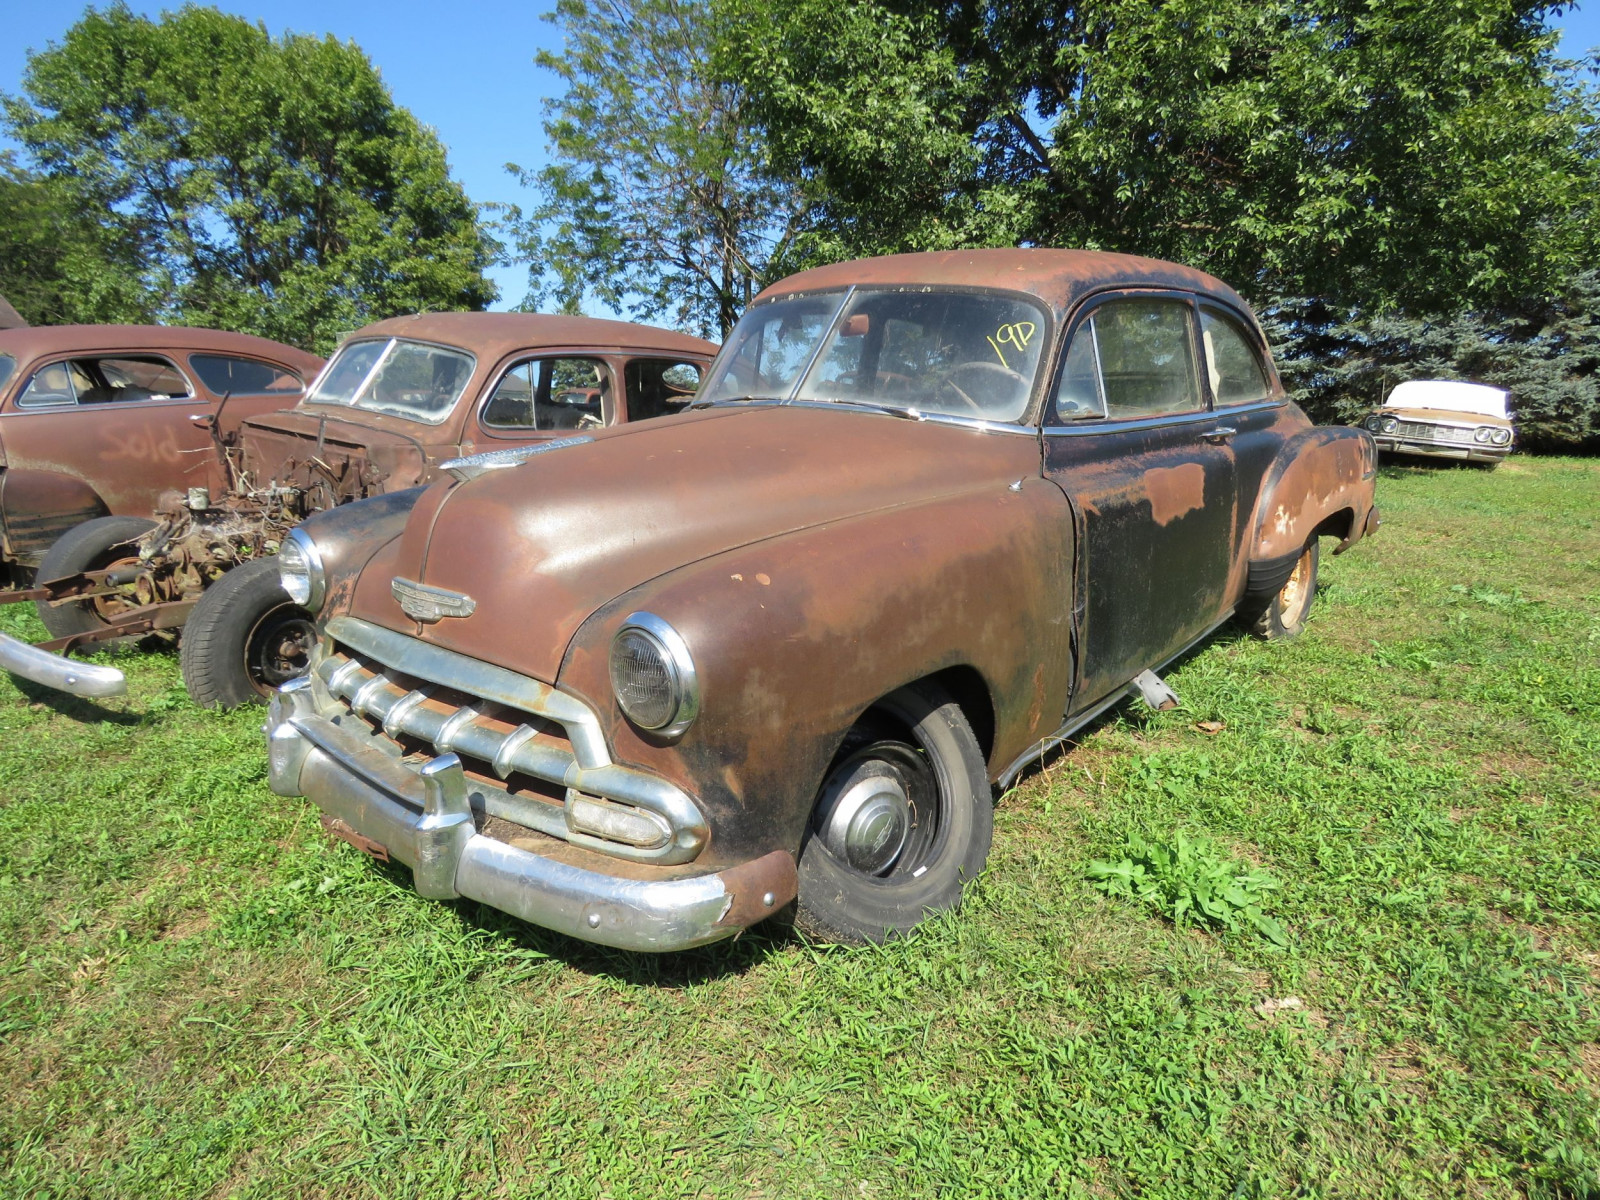 1952 Chevrolet 2dr Sedan for Project or Parts - Image 1